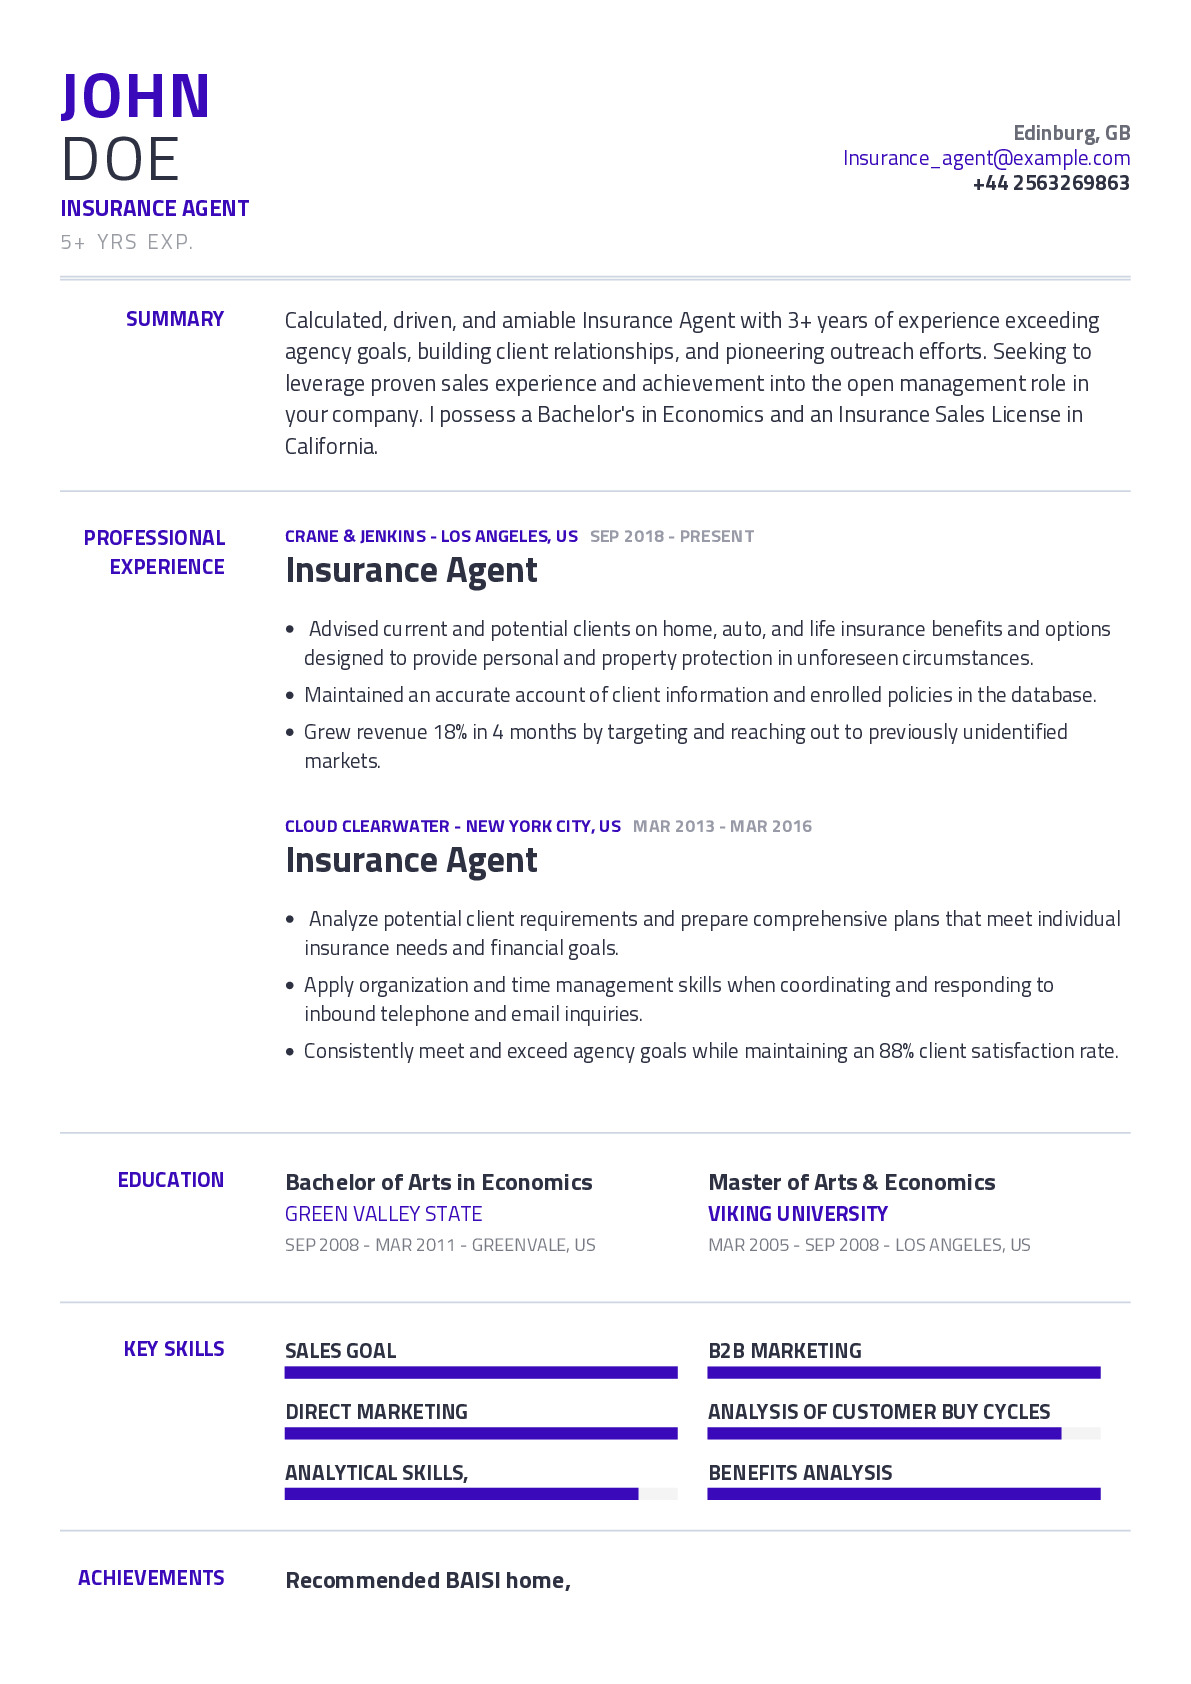 Insurance Agent Resume Example With Content Sample | CraftmyCV